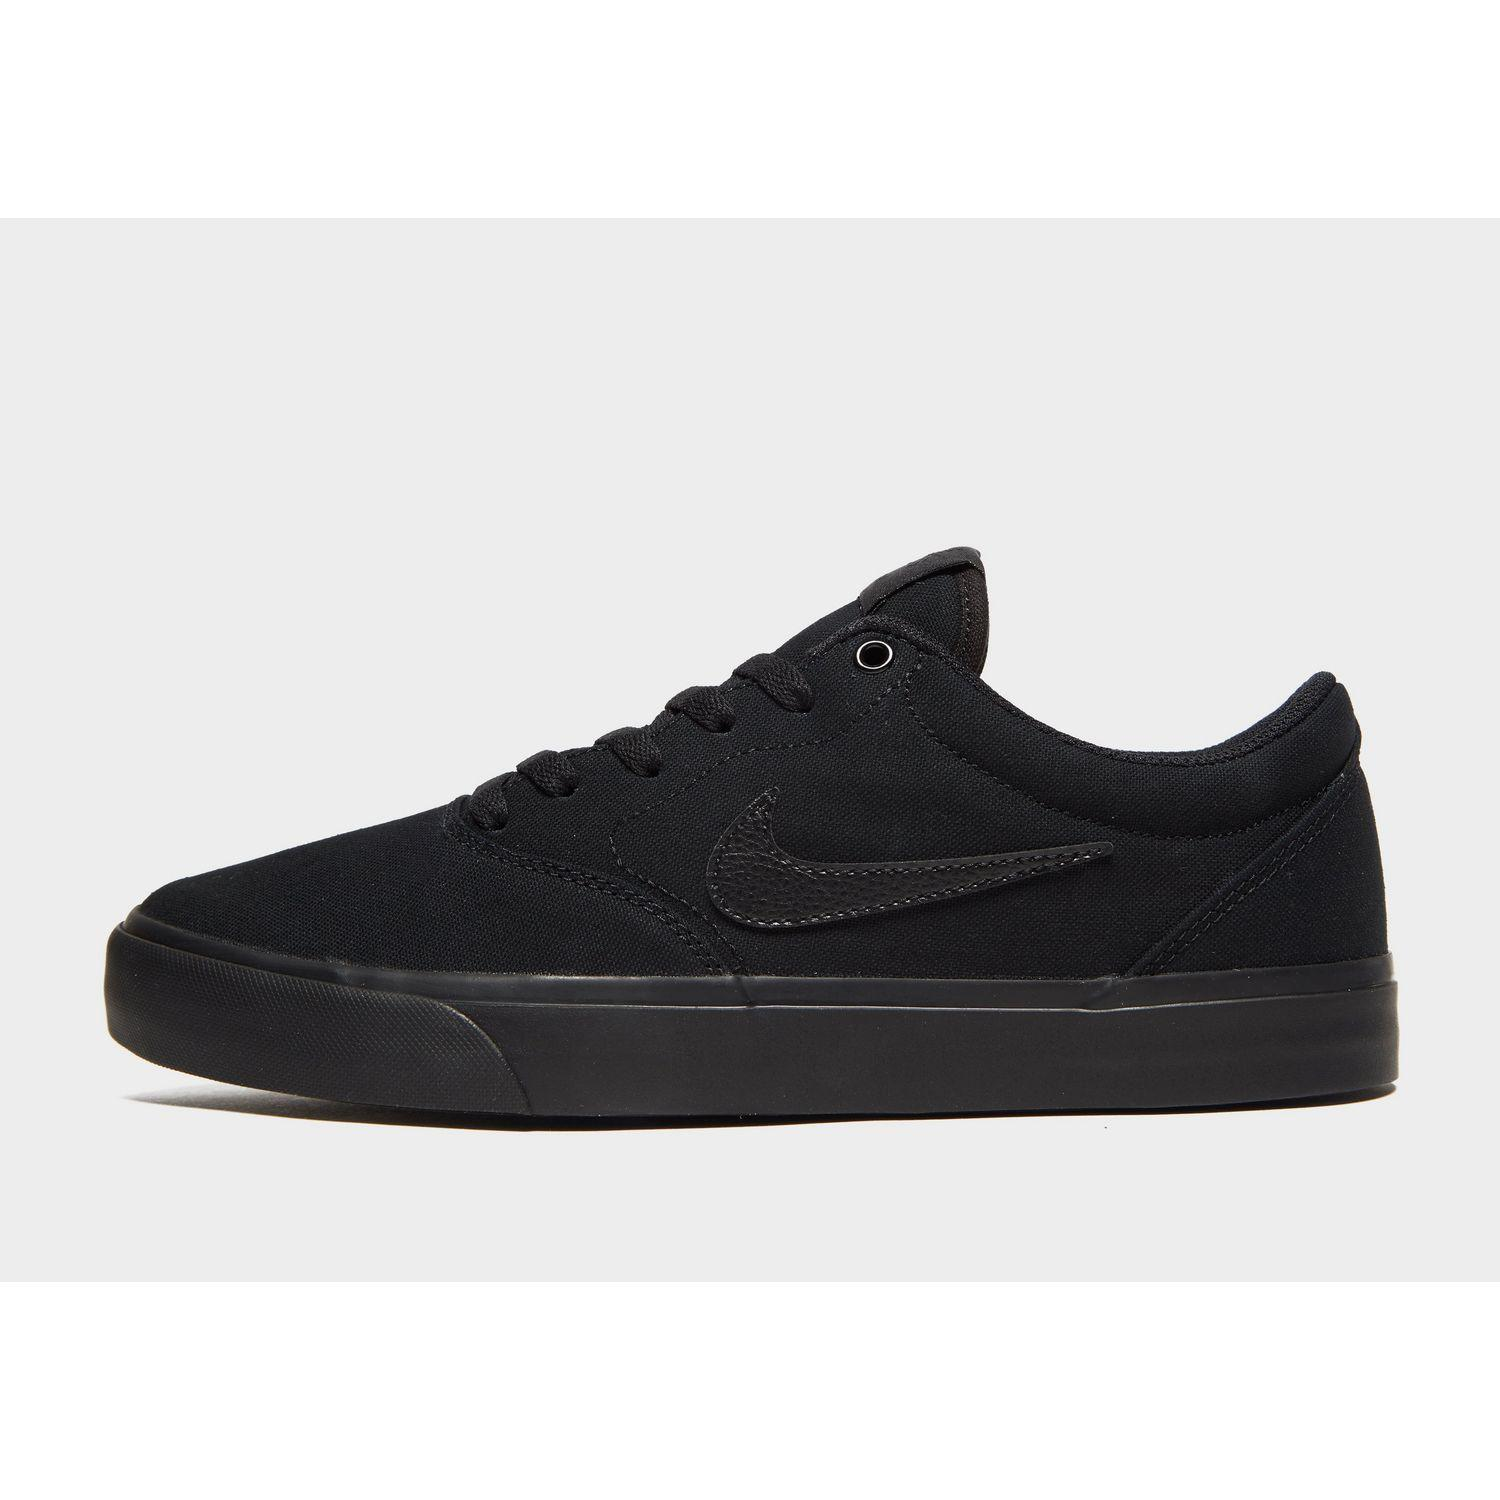 Details about Nike SB Charge Premium Men's Skate Shoes Comfy Skateboarding Canvas Sneakers